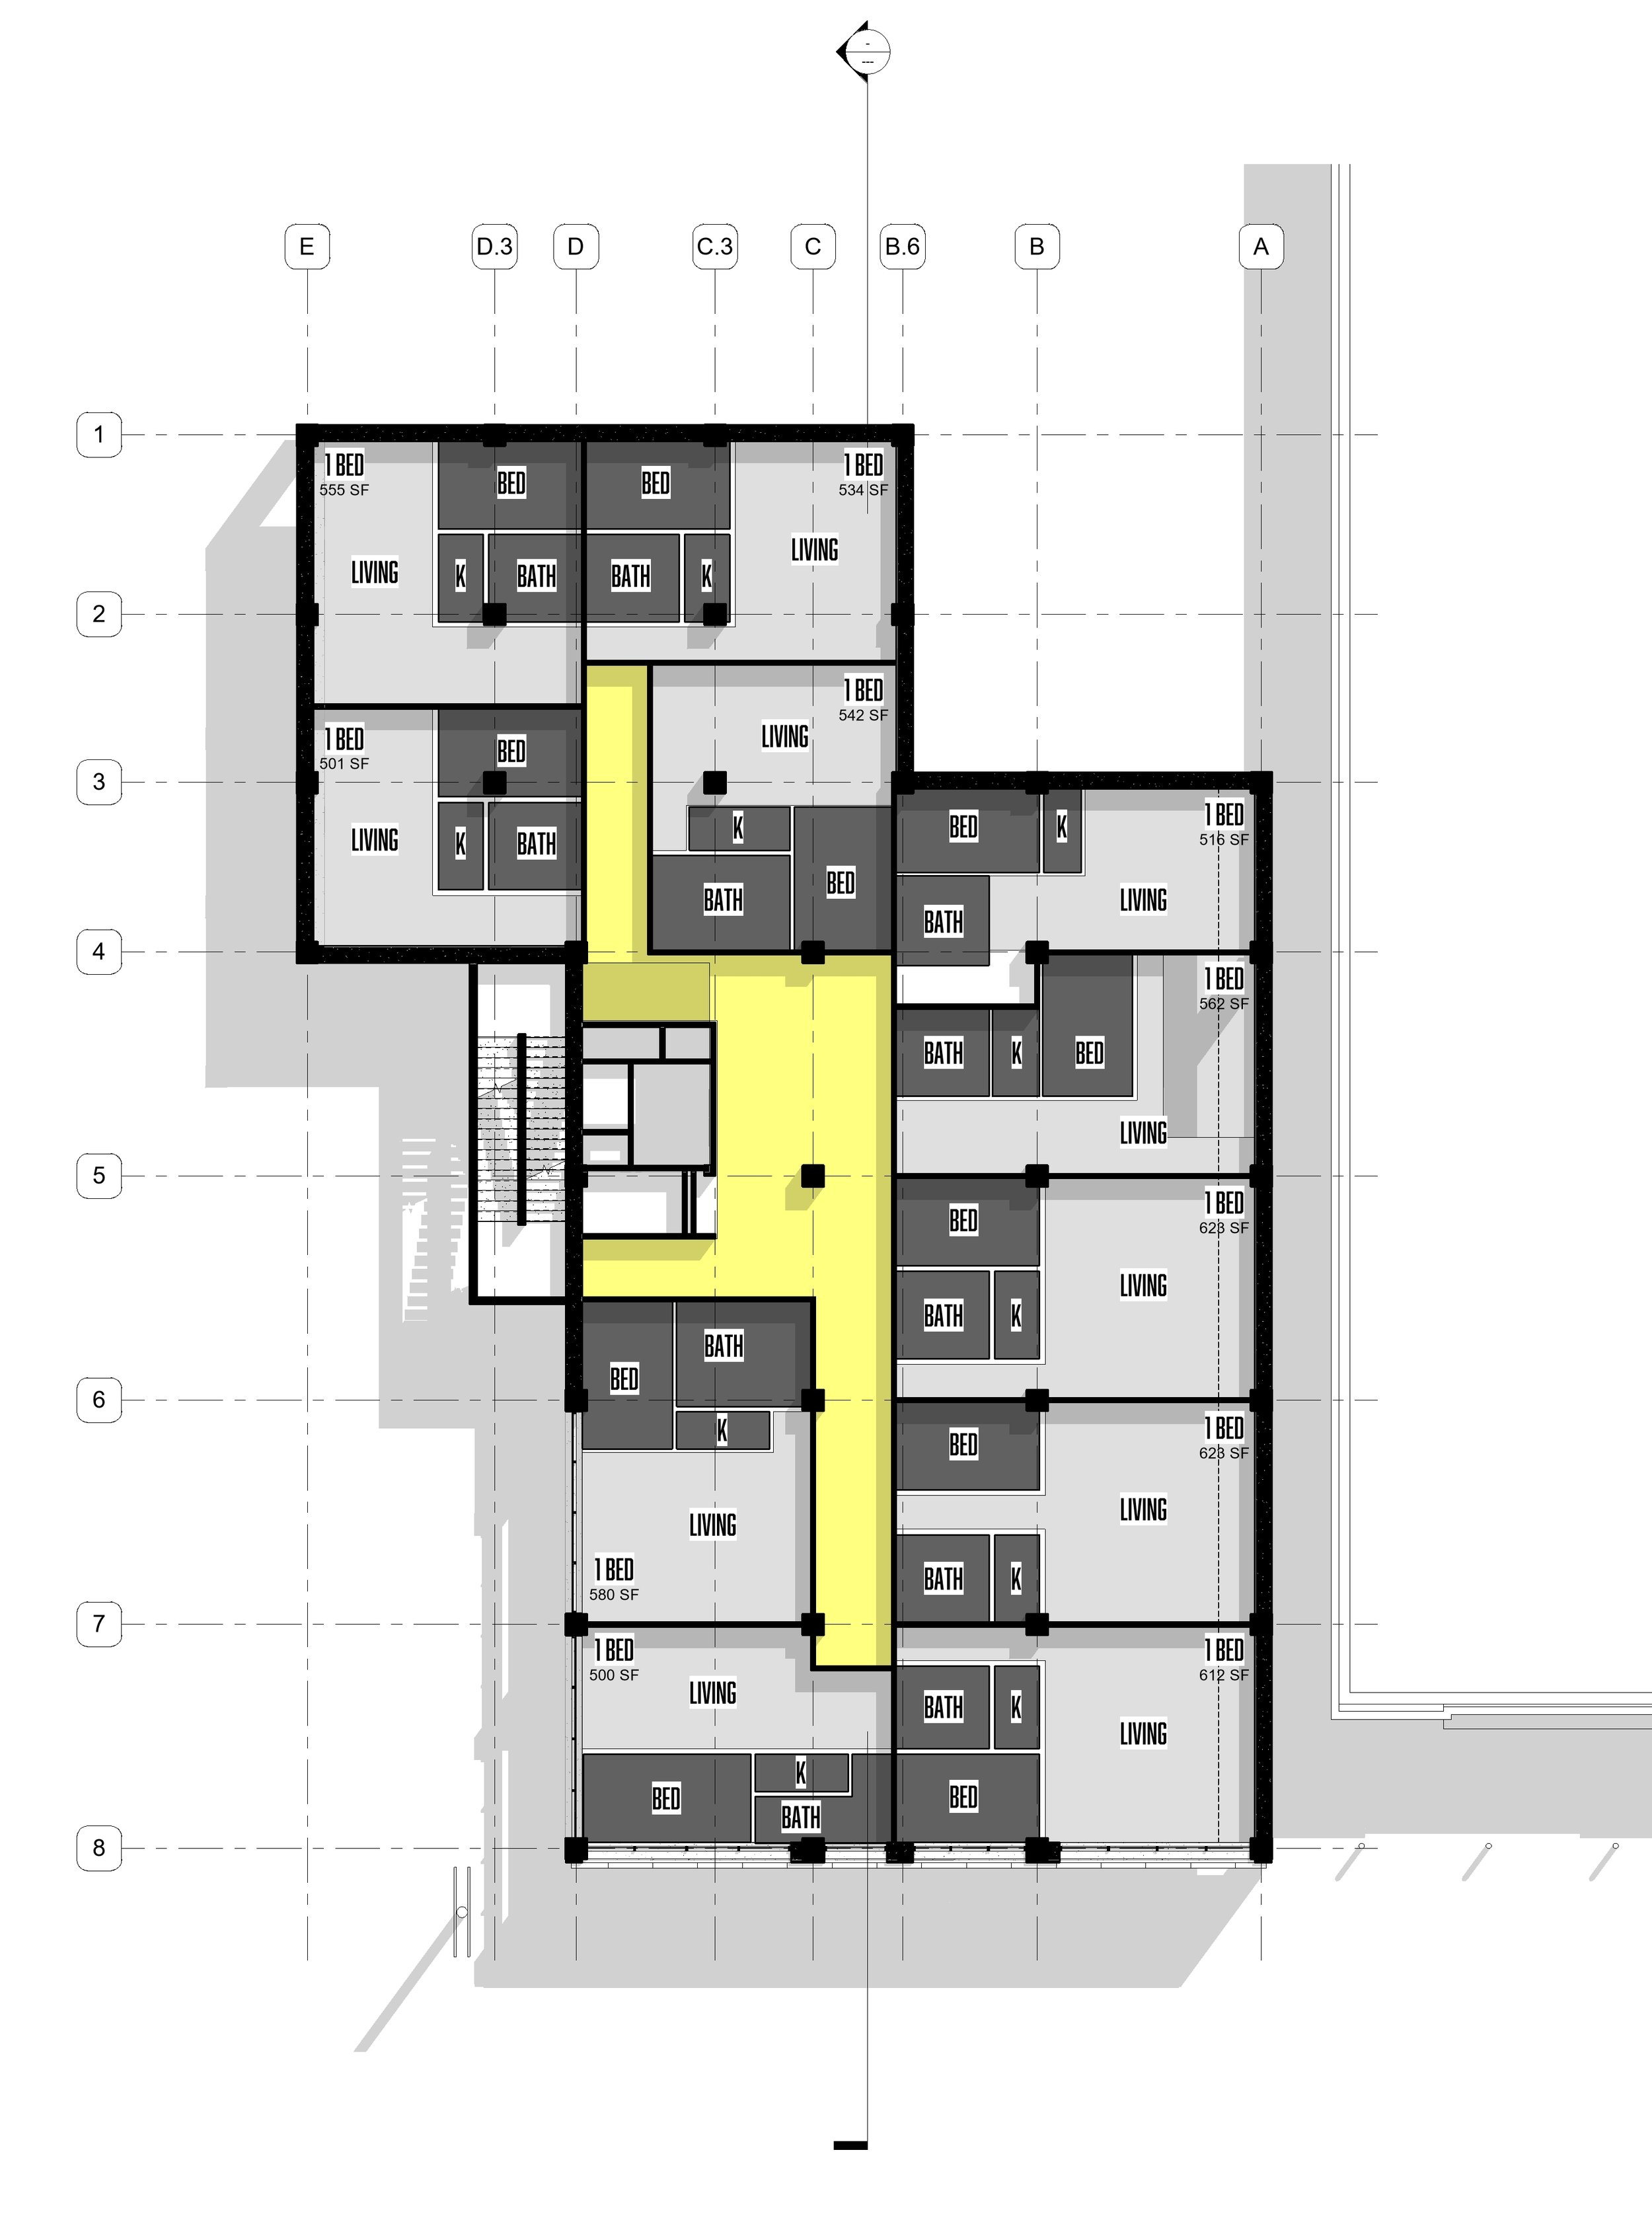 TYPICAL PLAN - OOMBRA ARCHITECTS ©